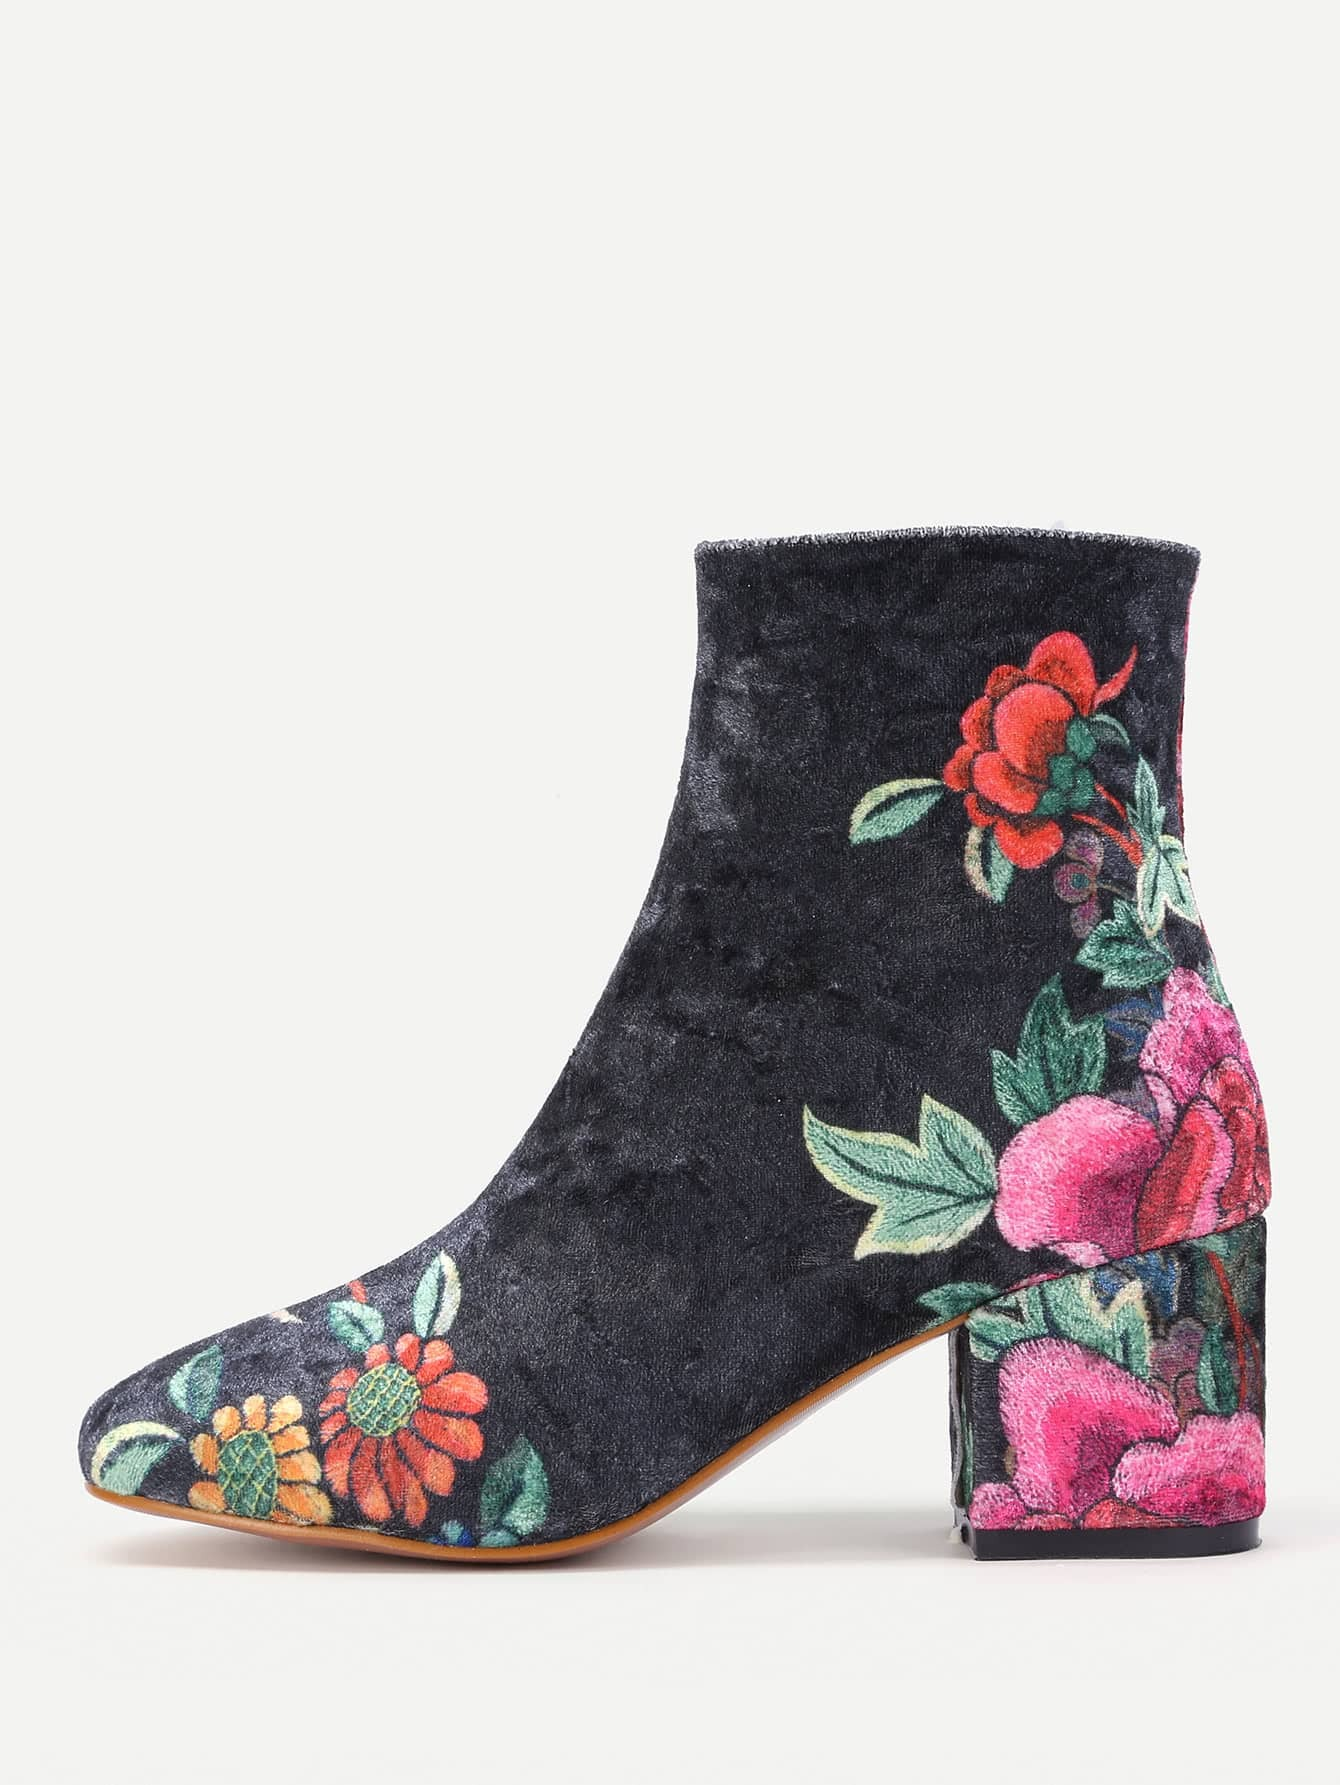 Floral Print Side Zipper Ankle Boots -SheIn(Sheinside)